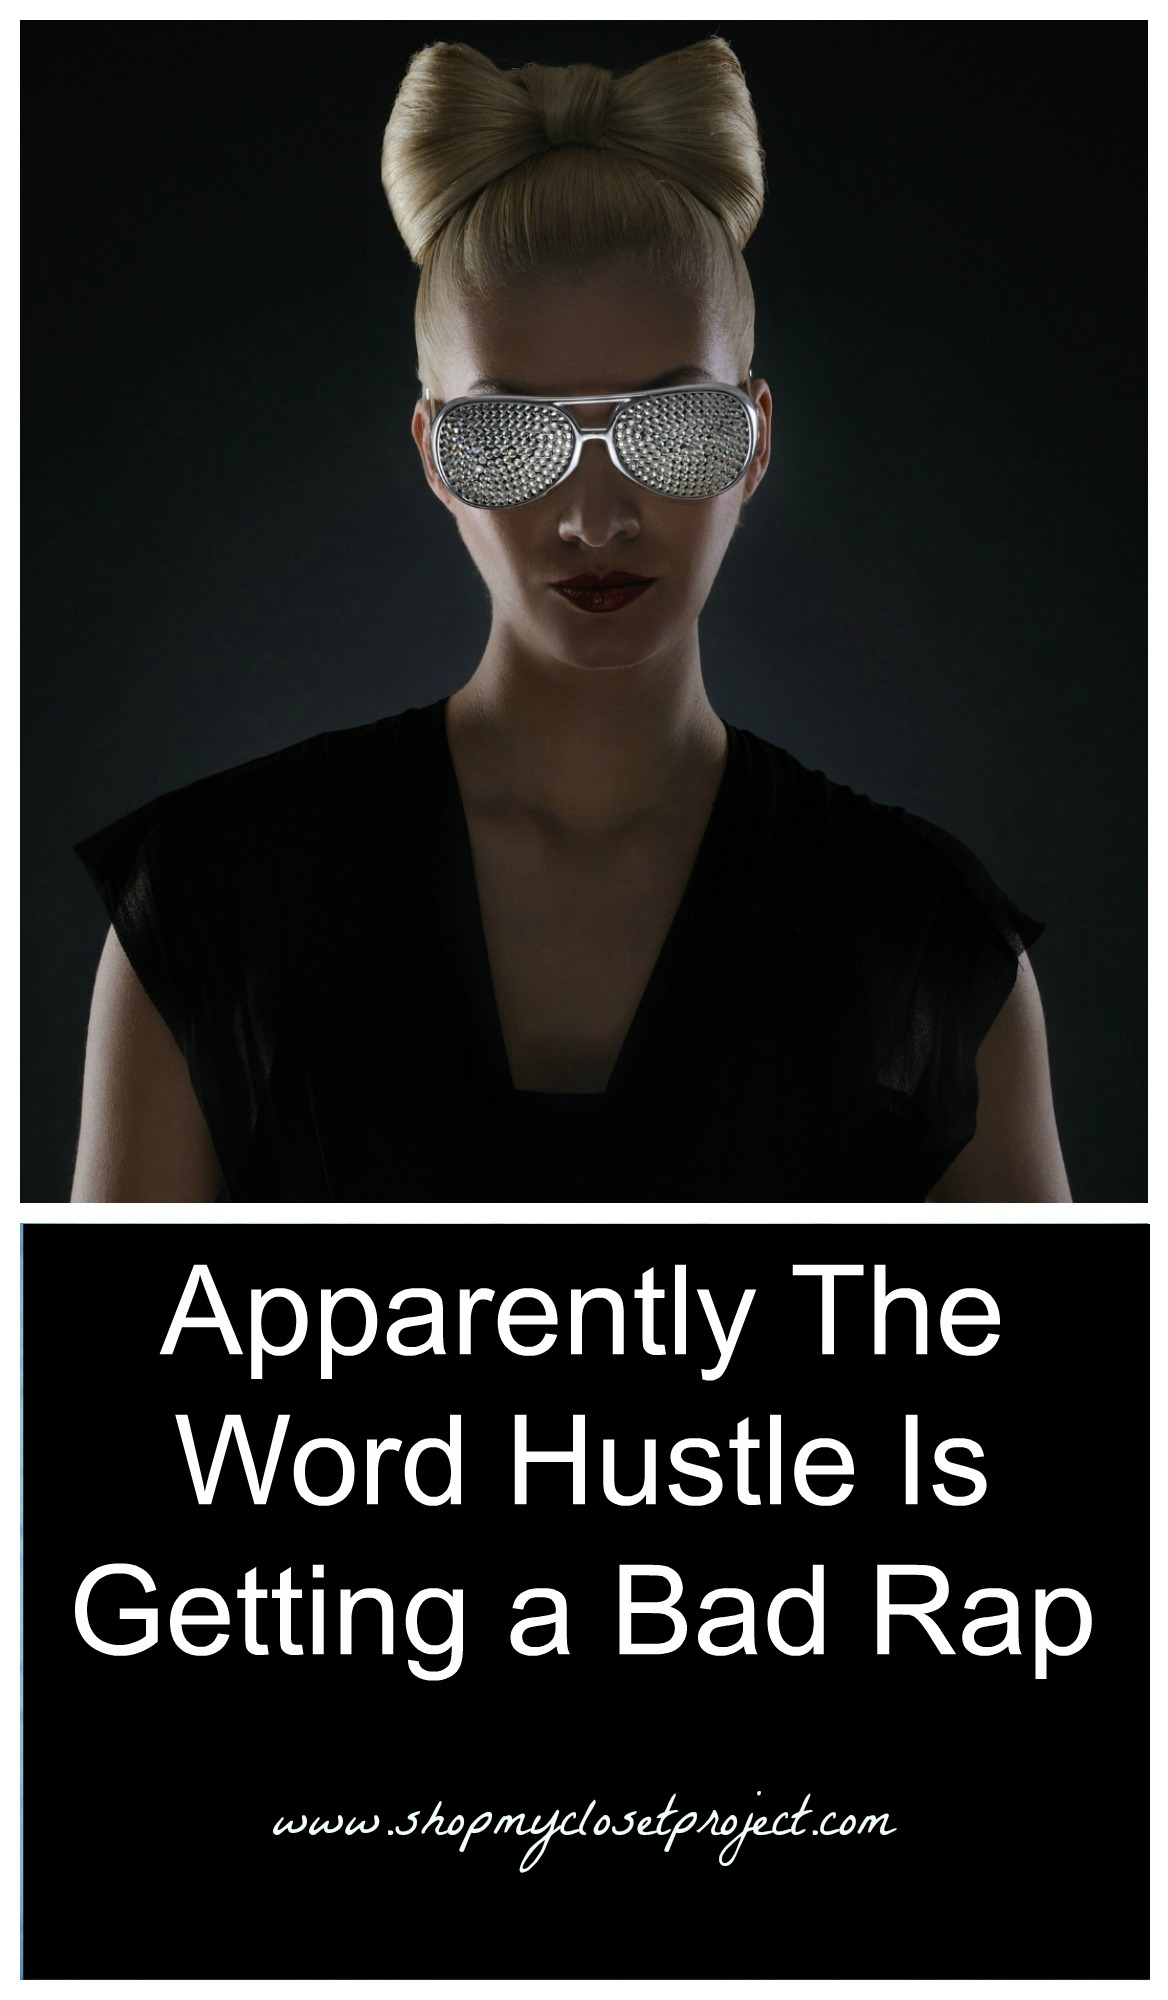 Apparently The Word Hustle Is Getting a Bad Rap